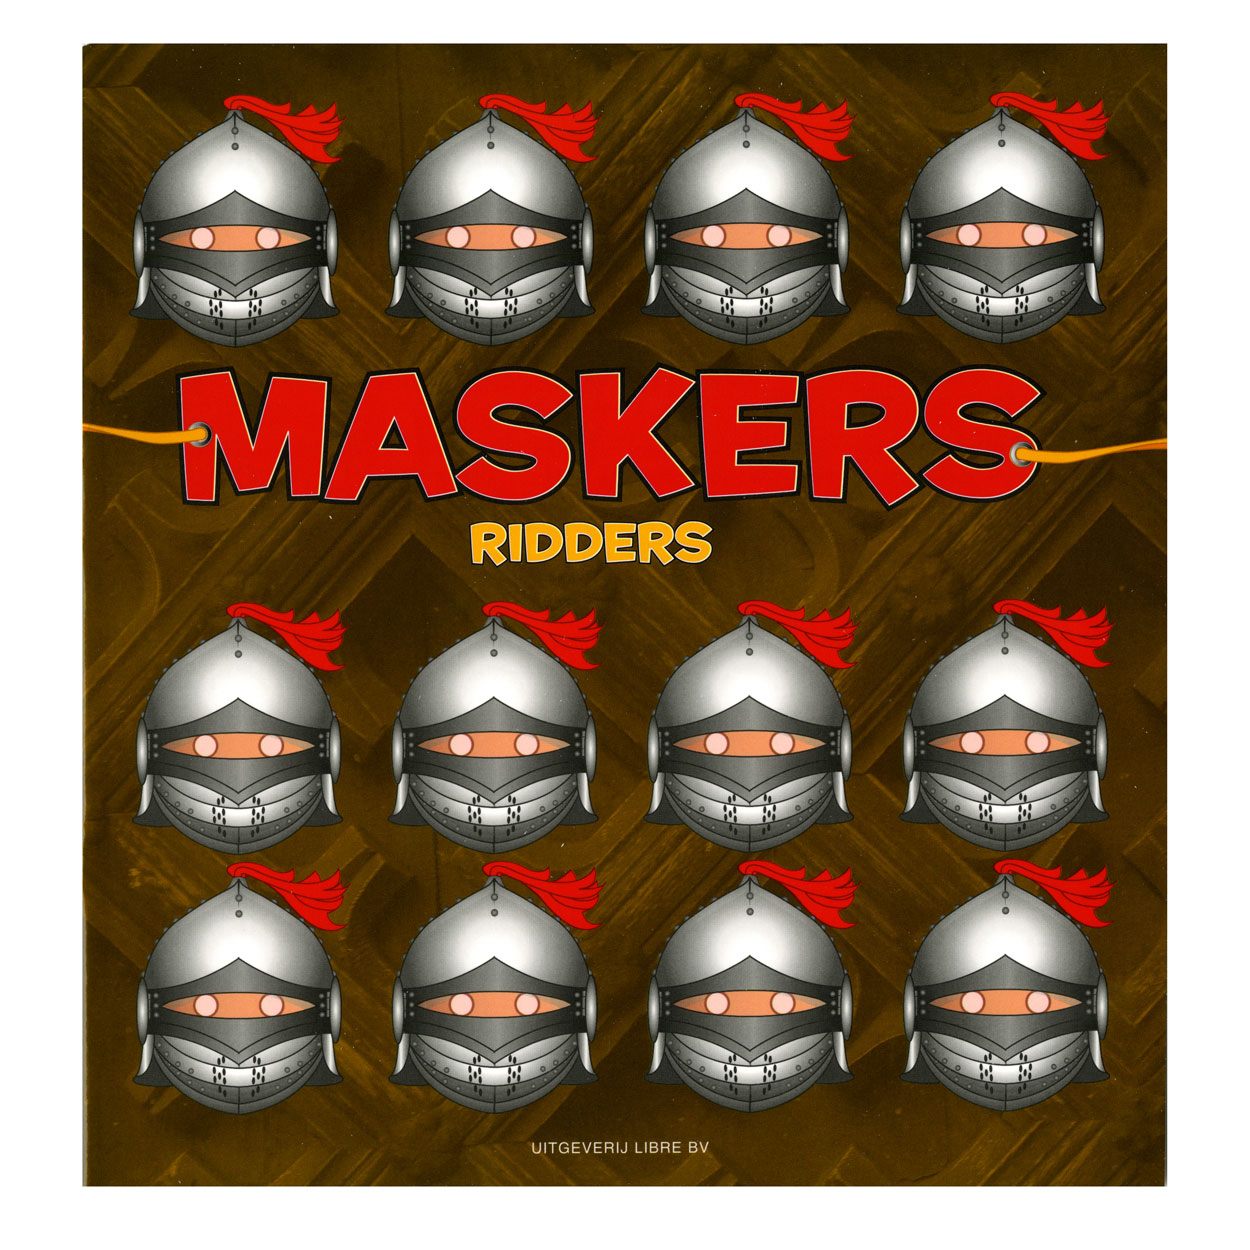 Maskers: Ridders